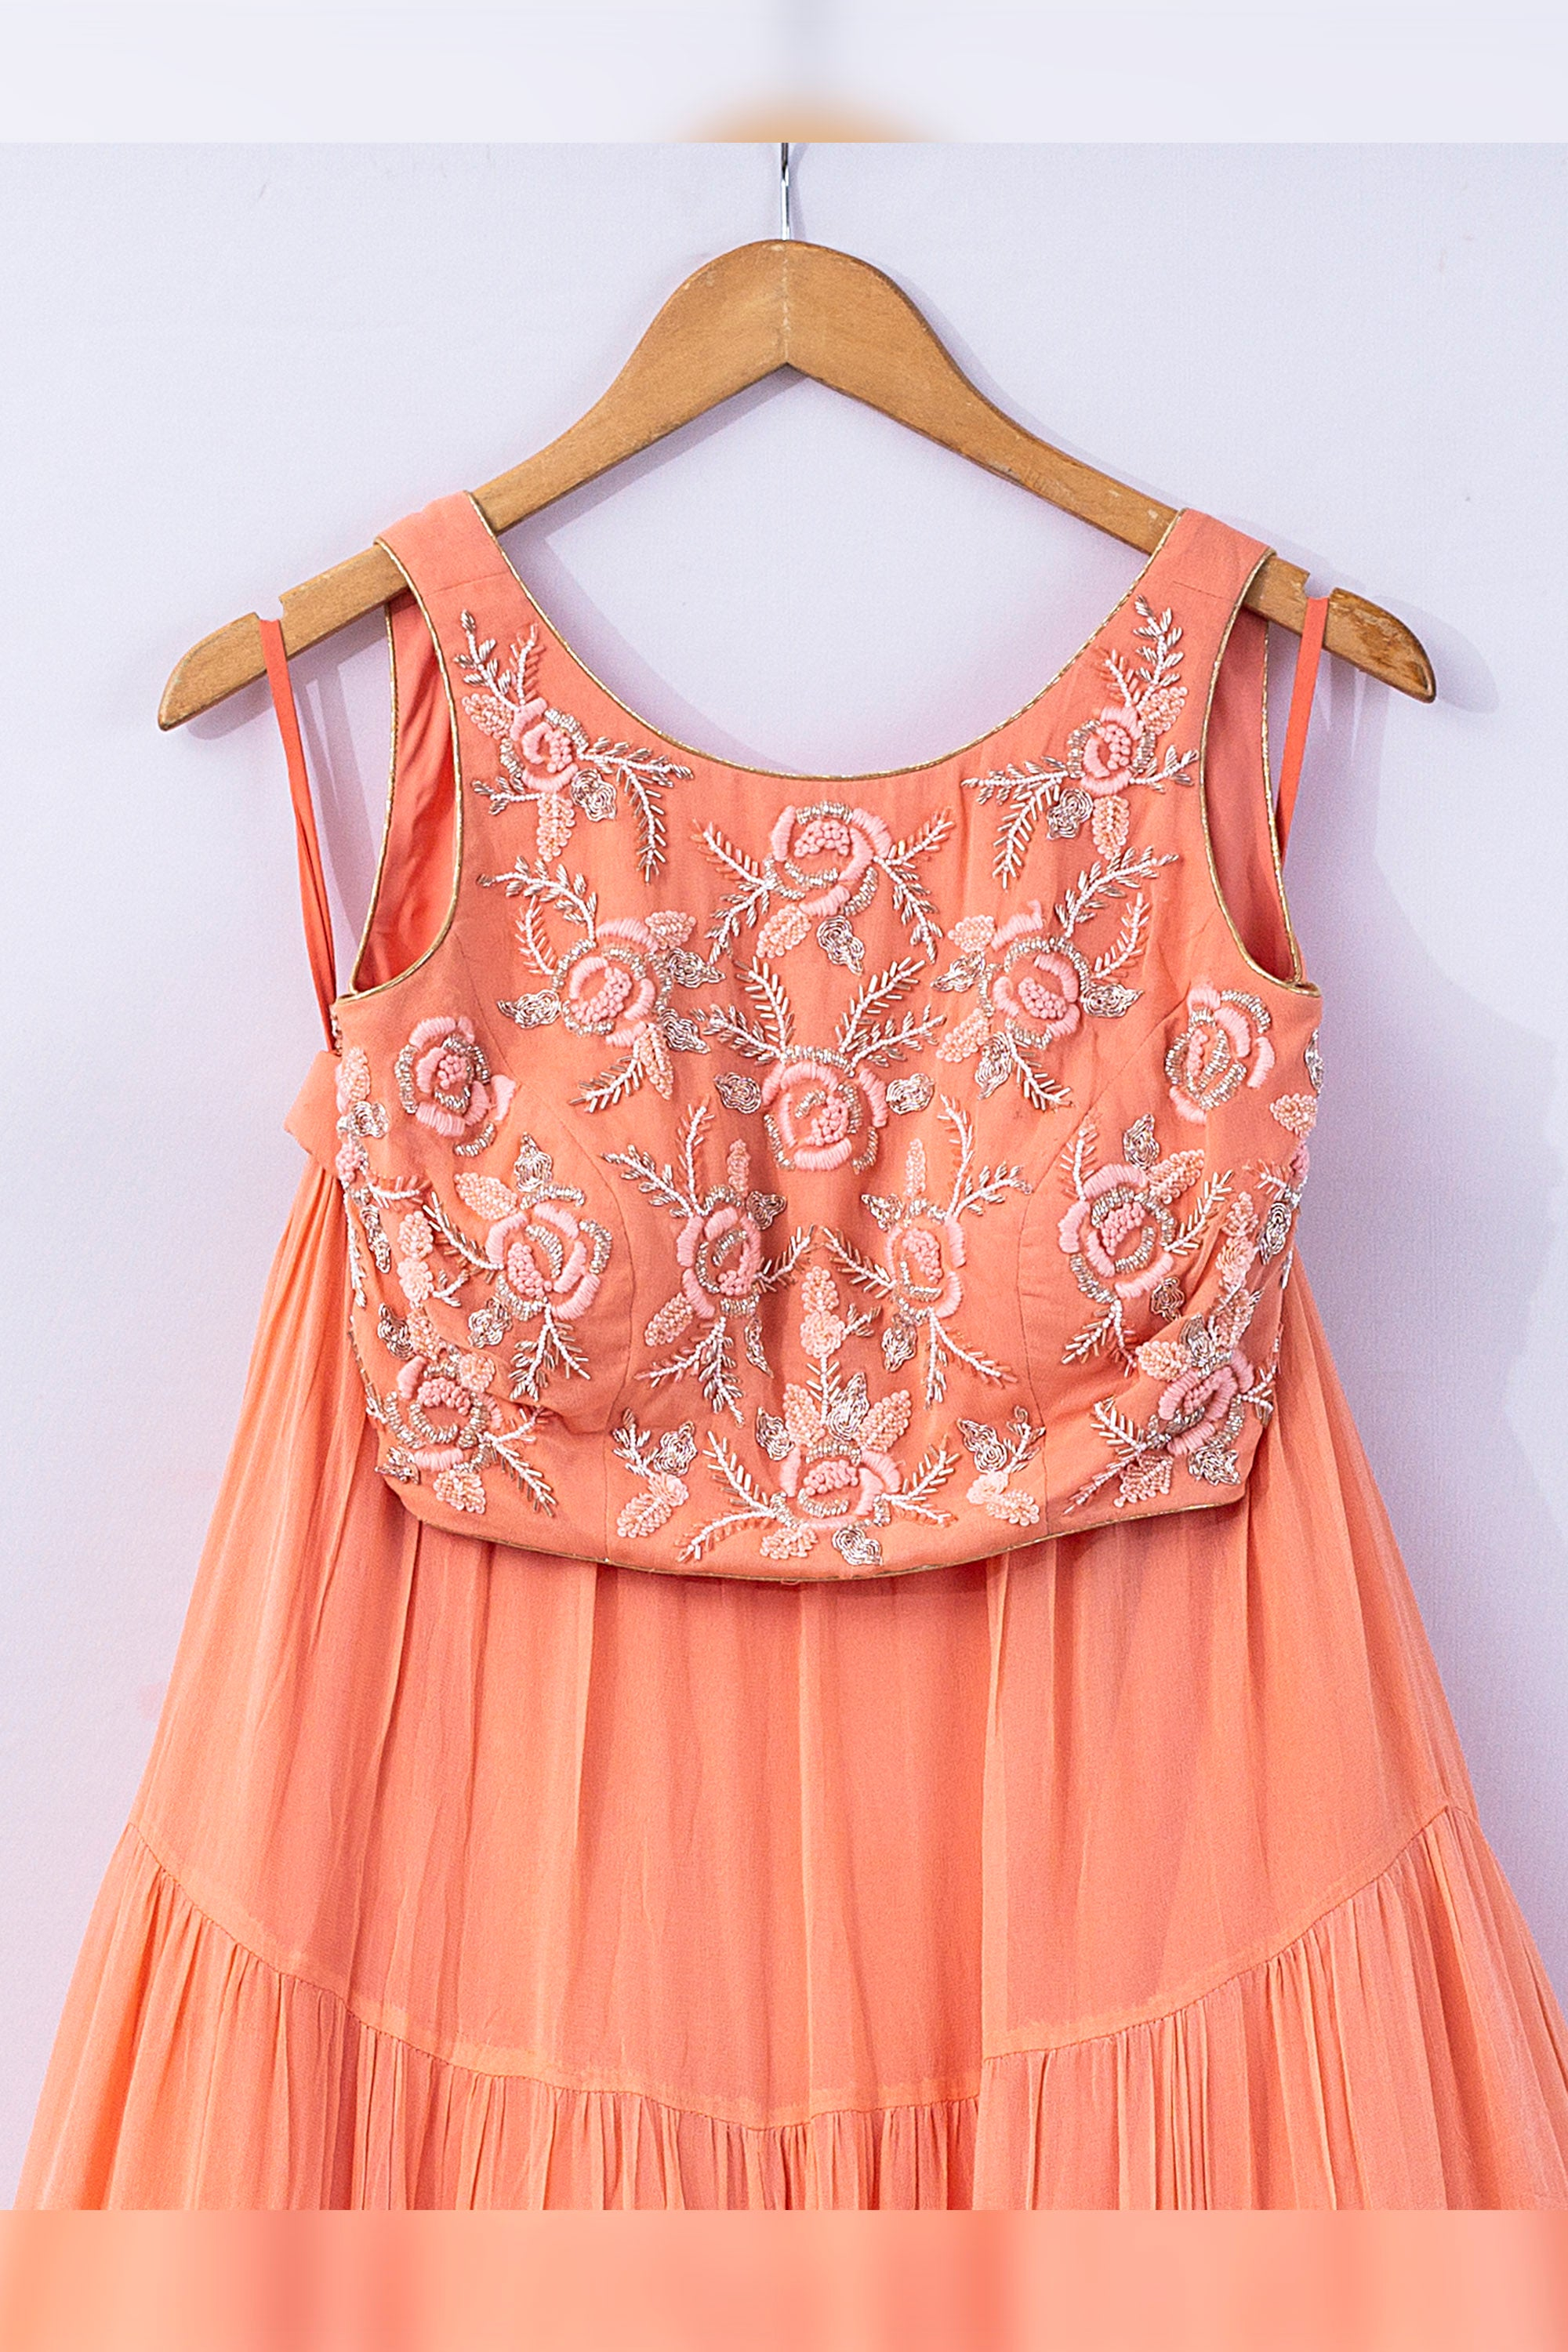 Peach Affair Lehenga CLOSEUP